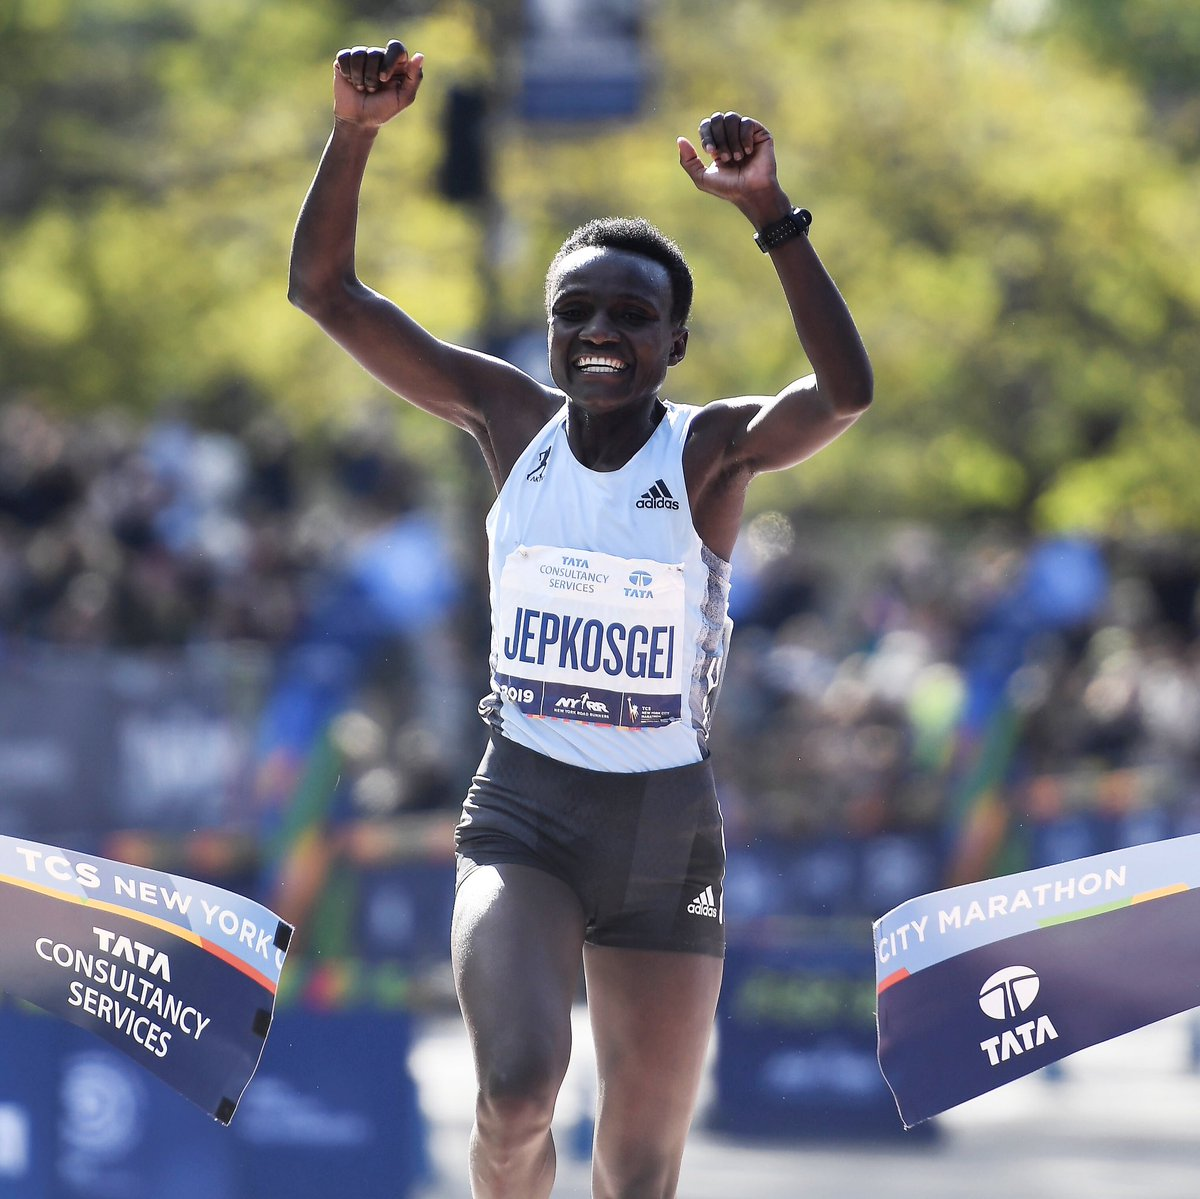 Imagination can take you from half marathon champion to running your first marathon ever. And winning it. Congratulations Joyciline Jepkosgei on a fearless 26.2. #HereToCreate